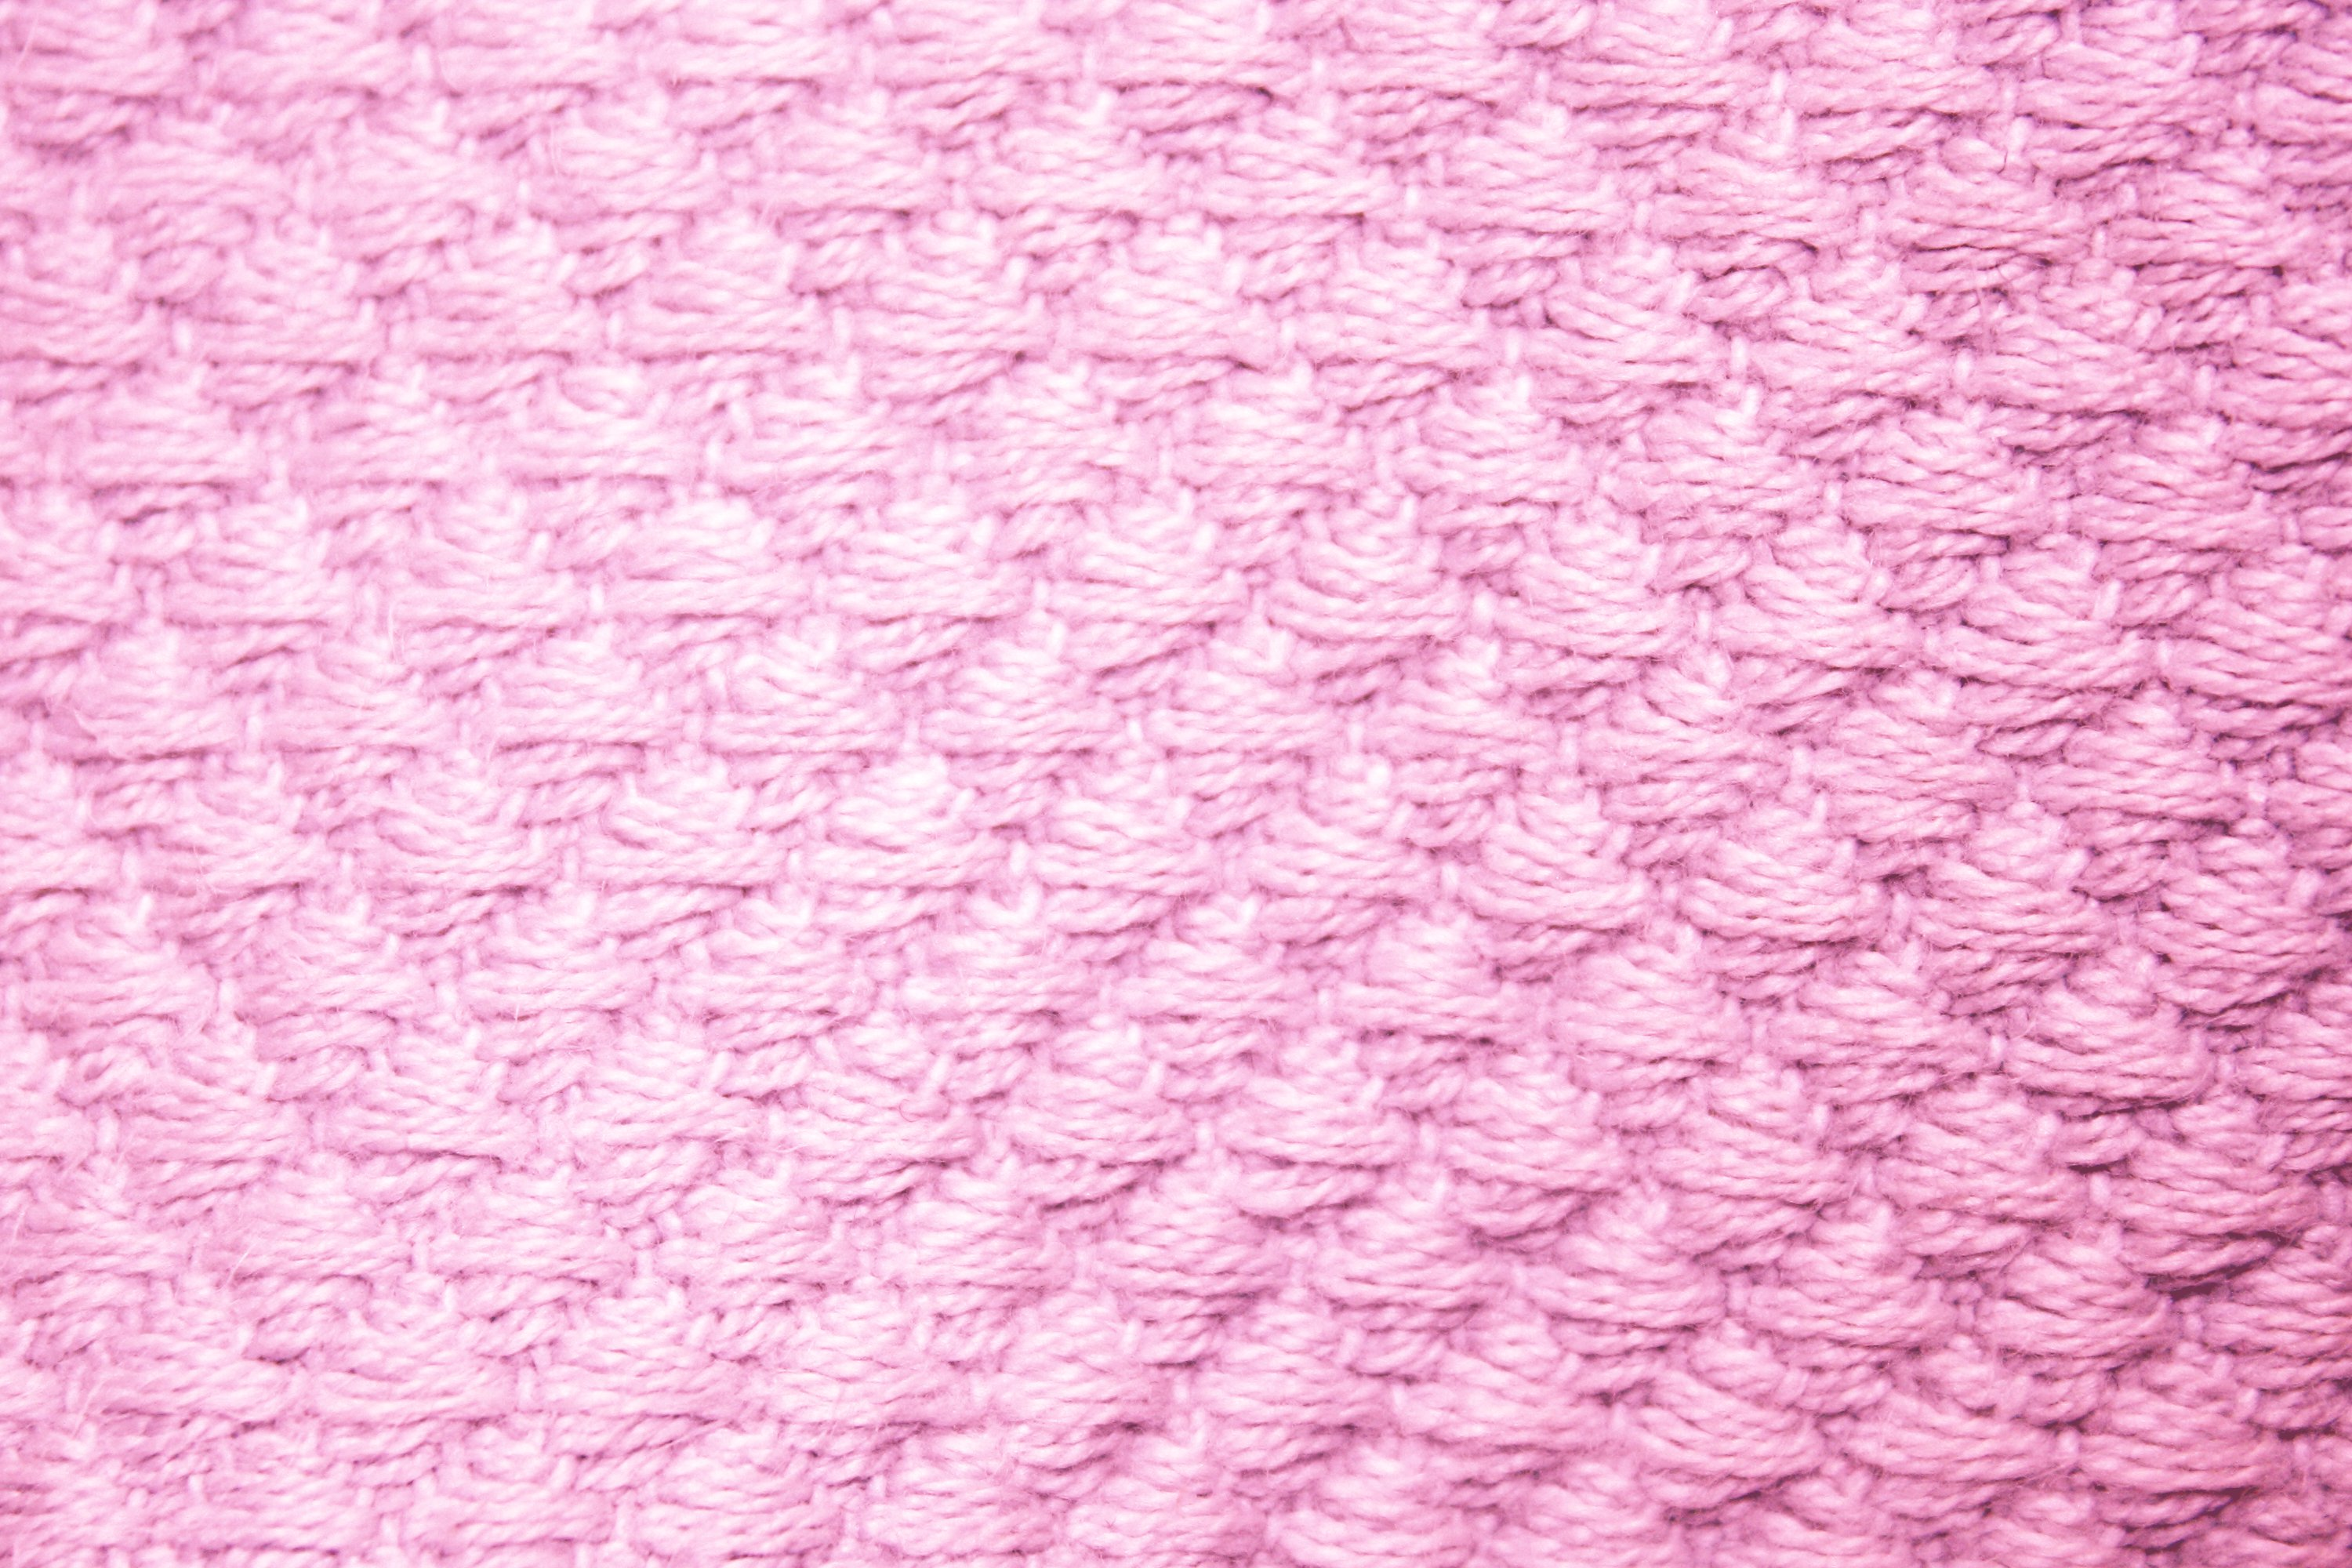 Pink bed sheet texture - Pink Diamond Patterned Blanket Close Up Texture